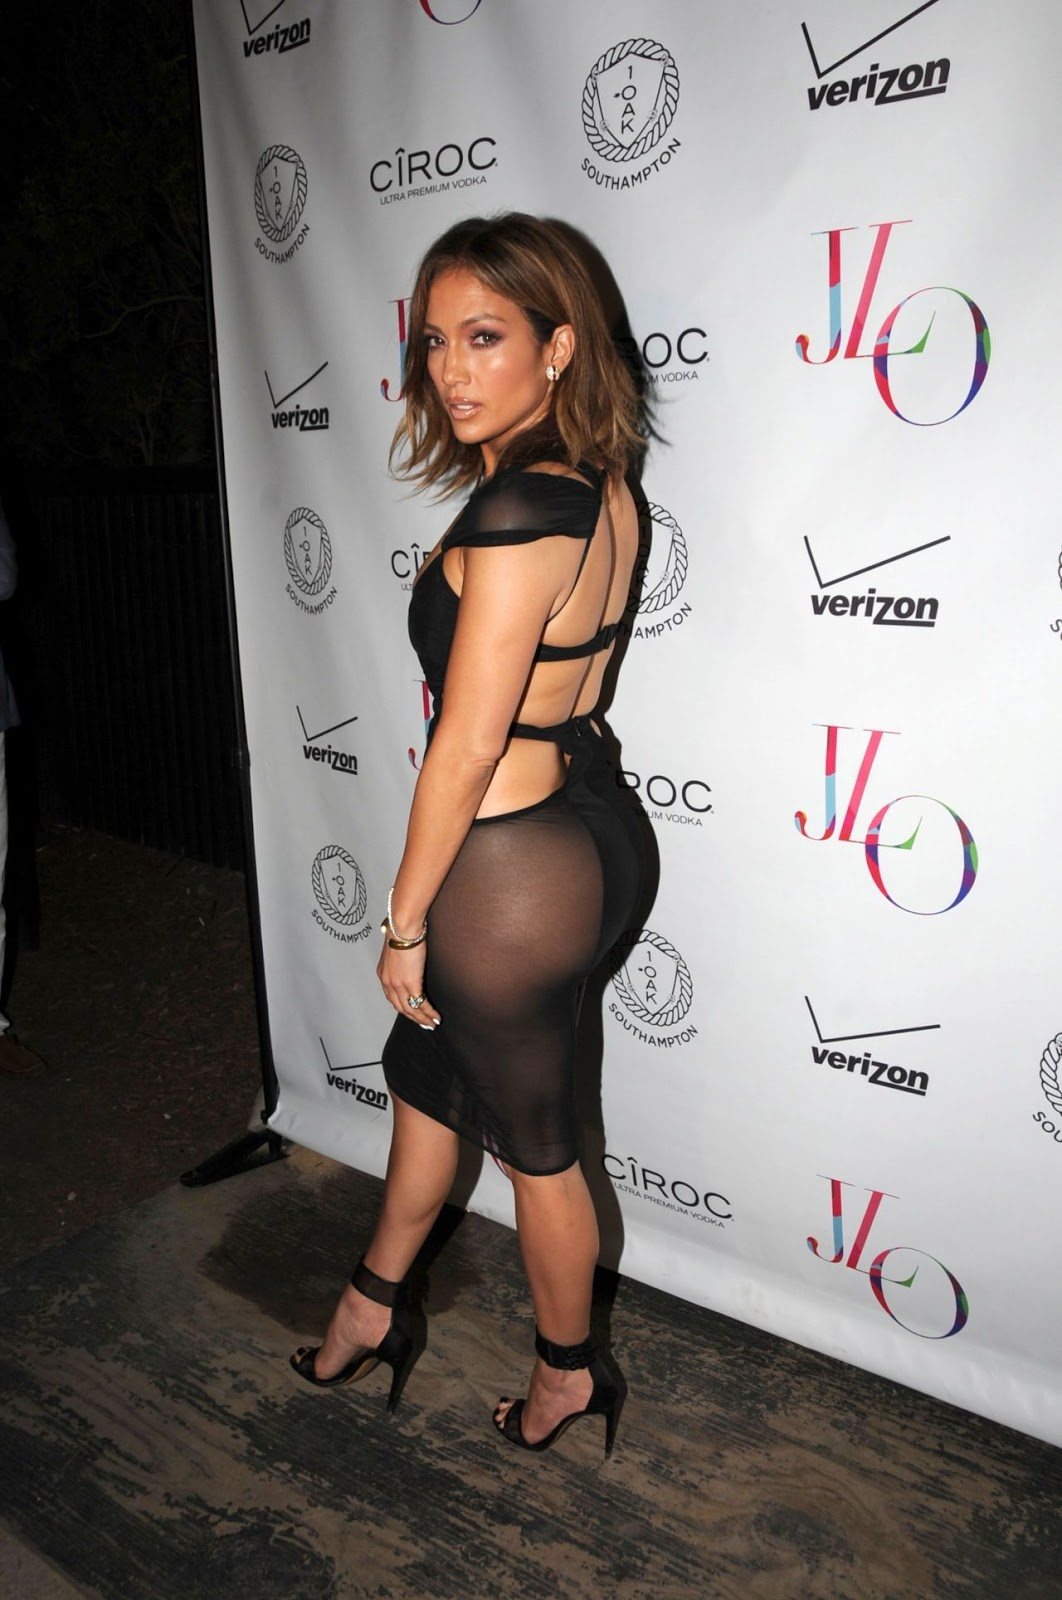 Jennifer Lopez flaunts derrière in sheer dress for 46th Birthday Celebrations